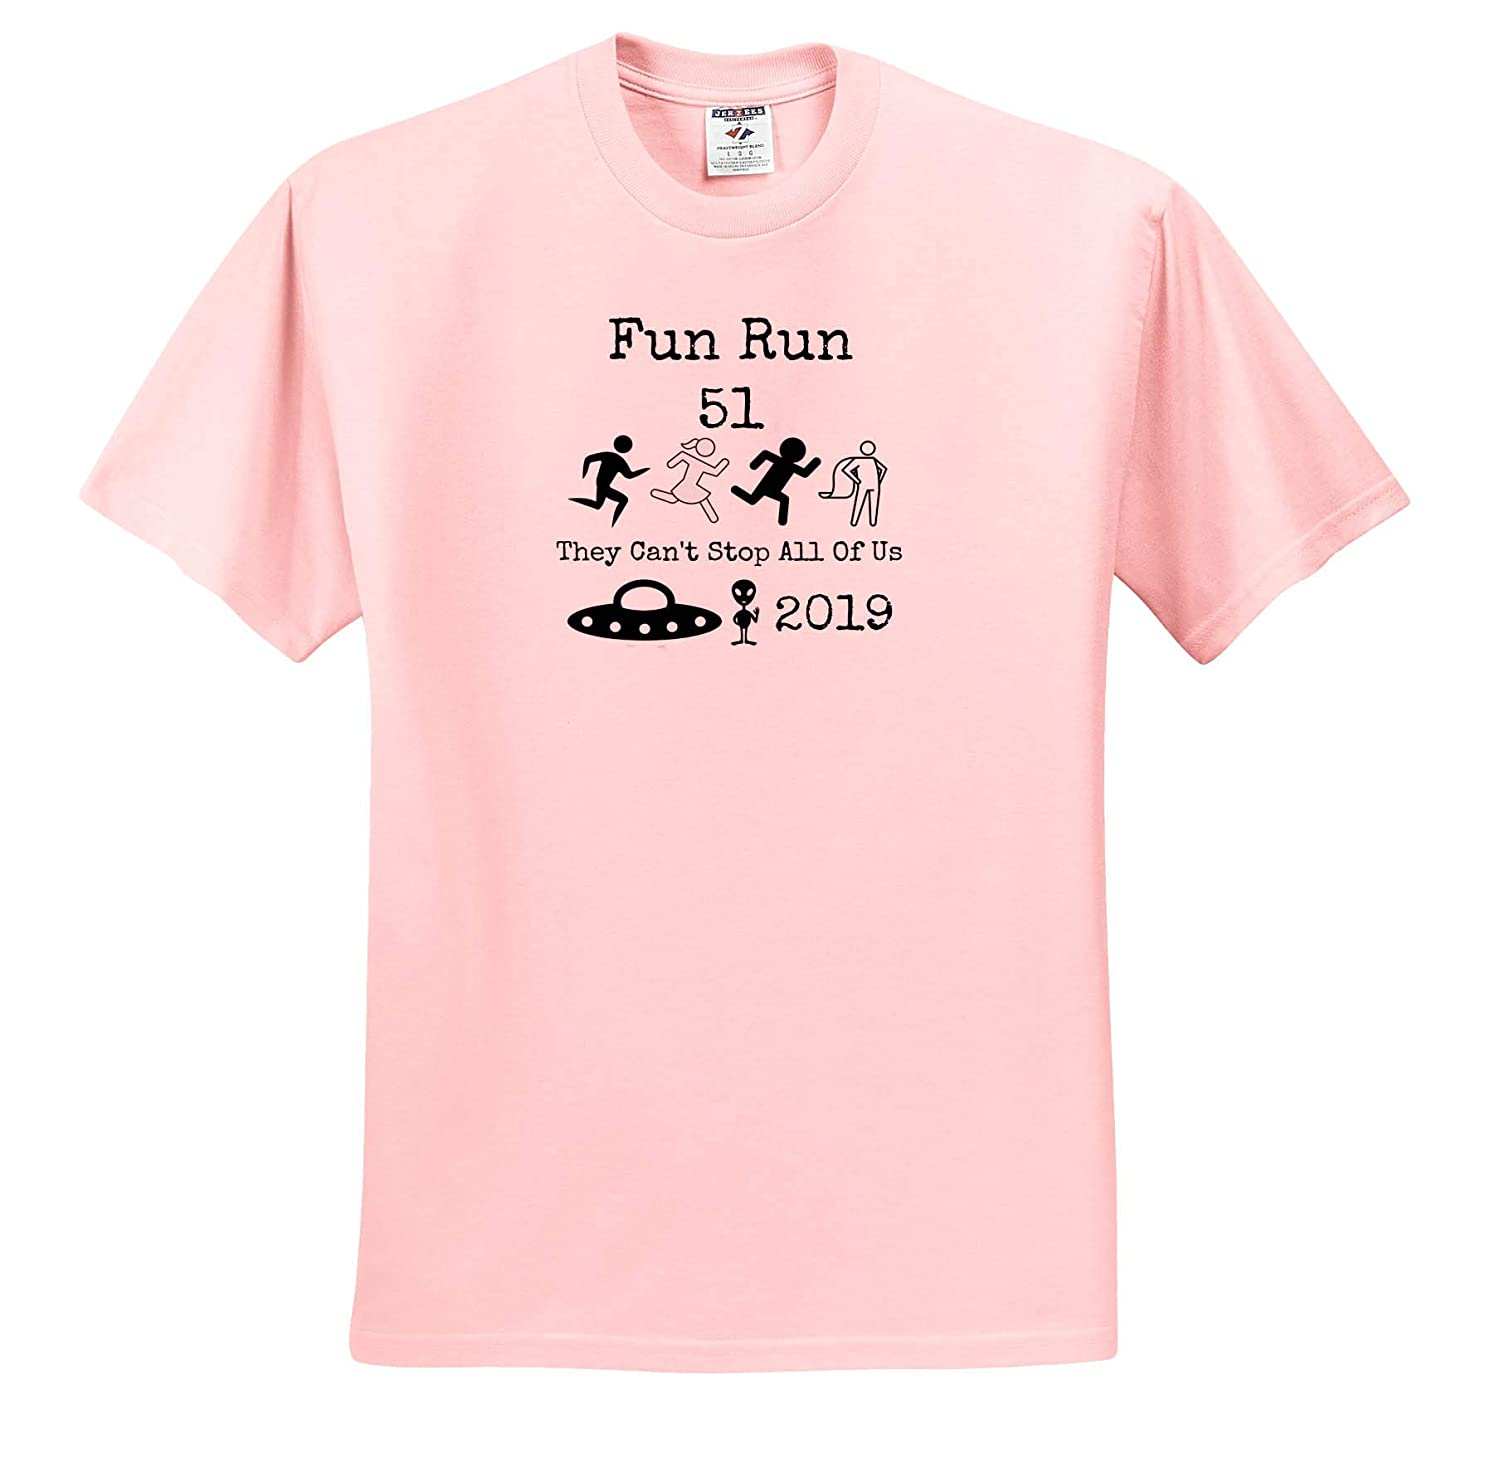 Image Quote Fun Run 51 They Cant Stop All of Us Adult T-Shirt XL ts/_321063 3dRose Carrie Quote Image